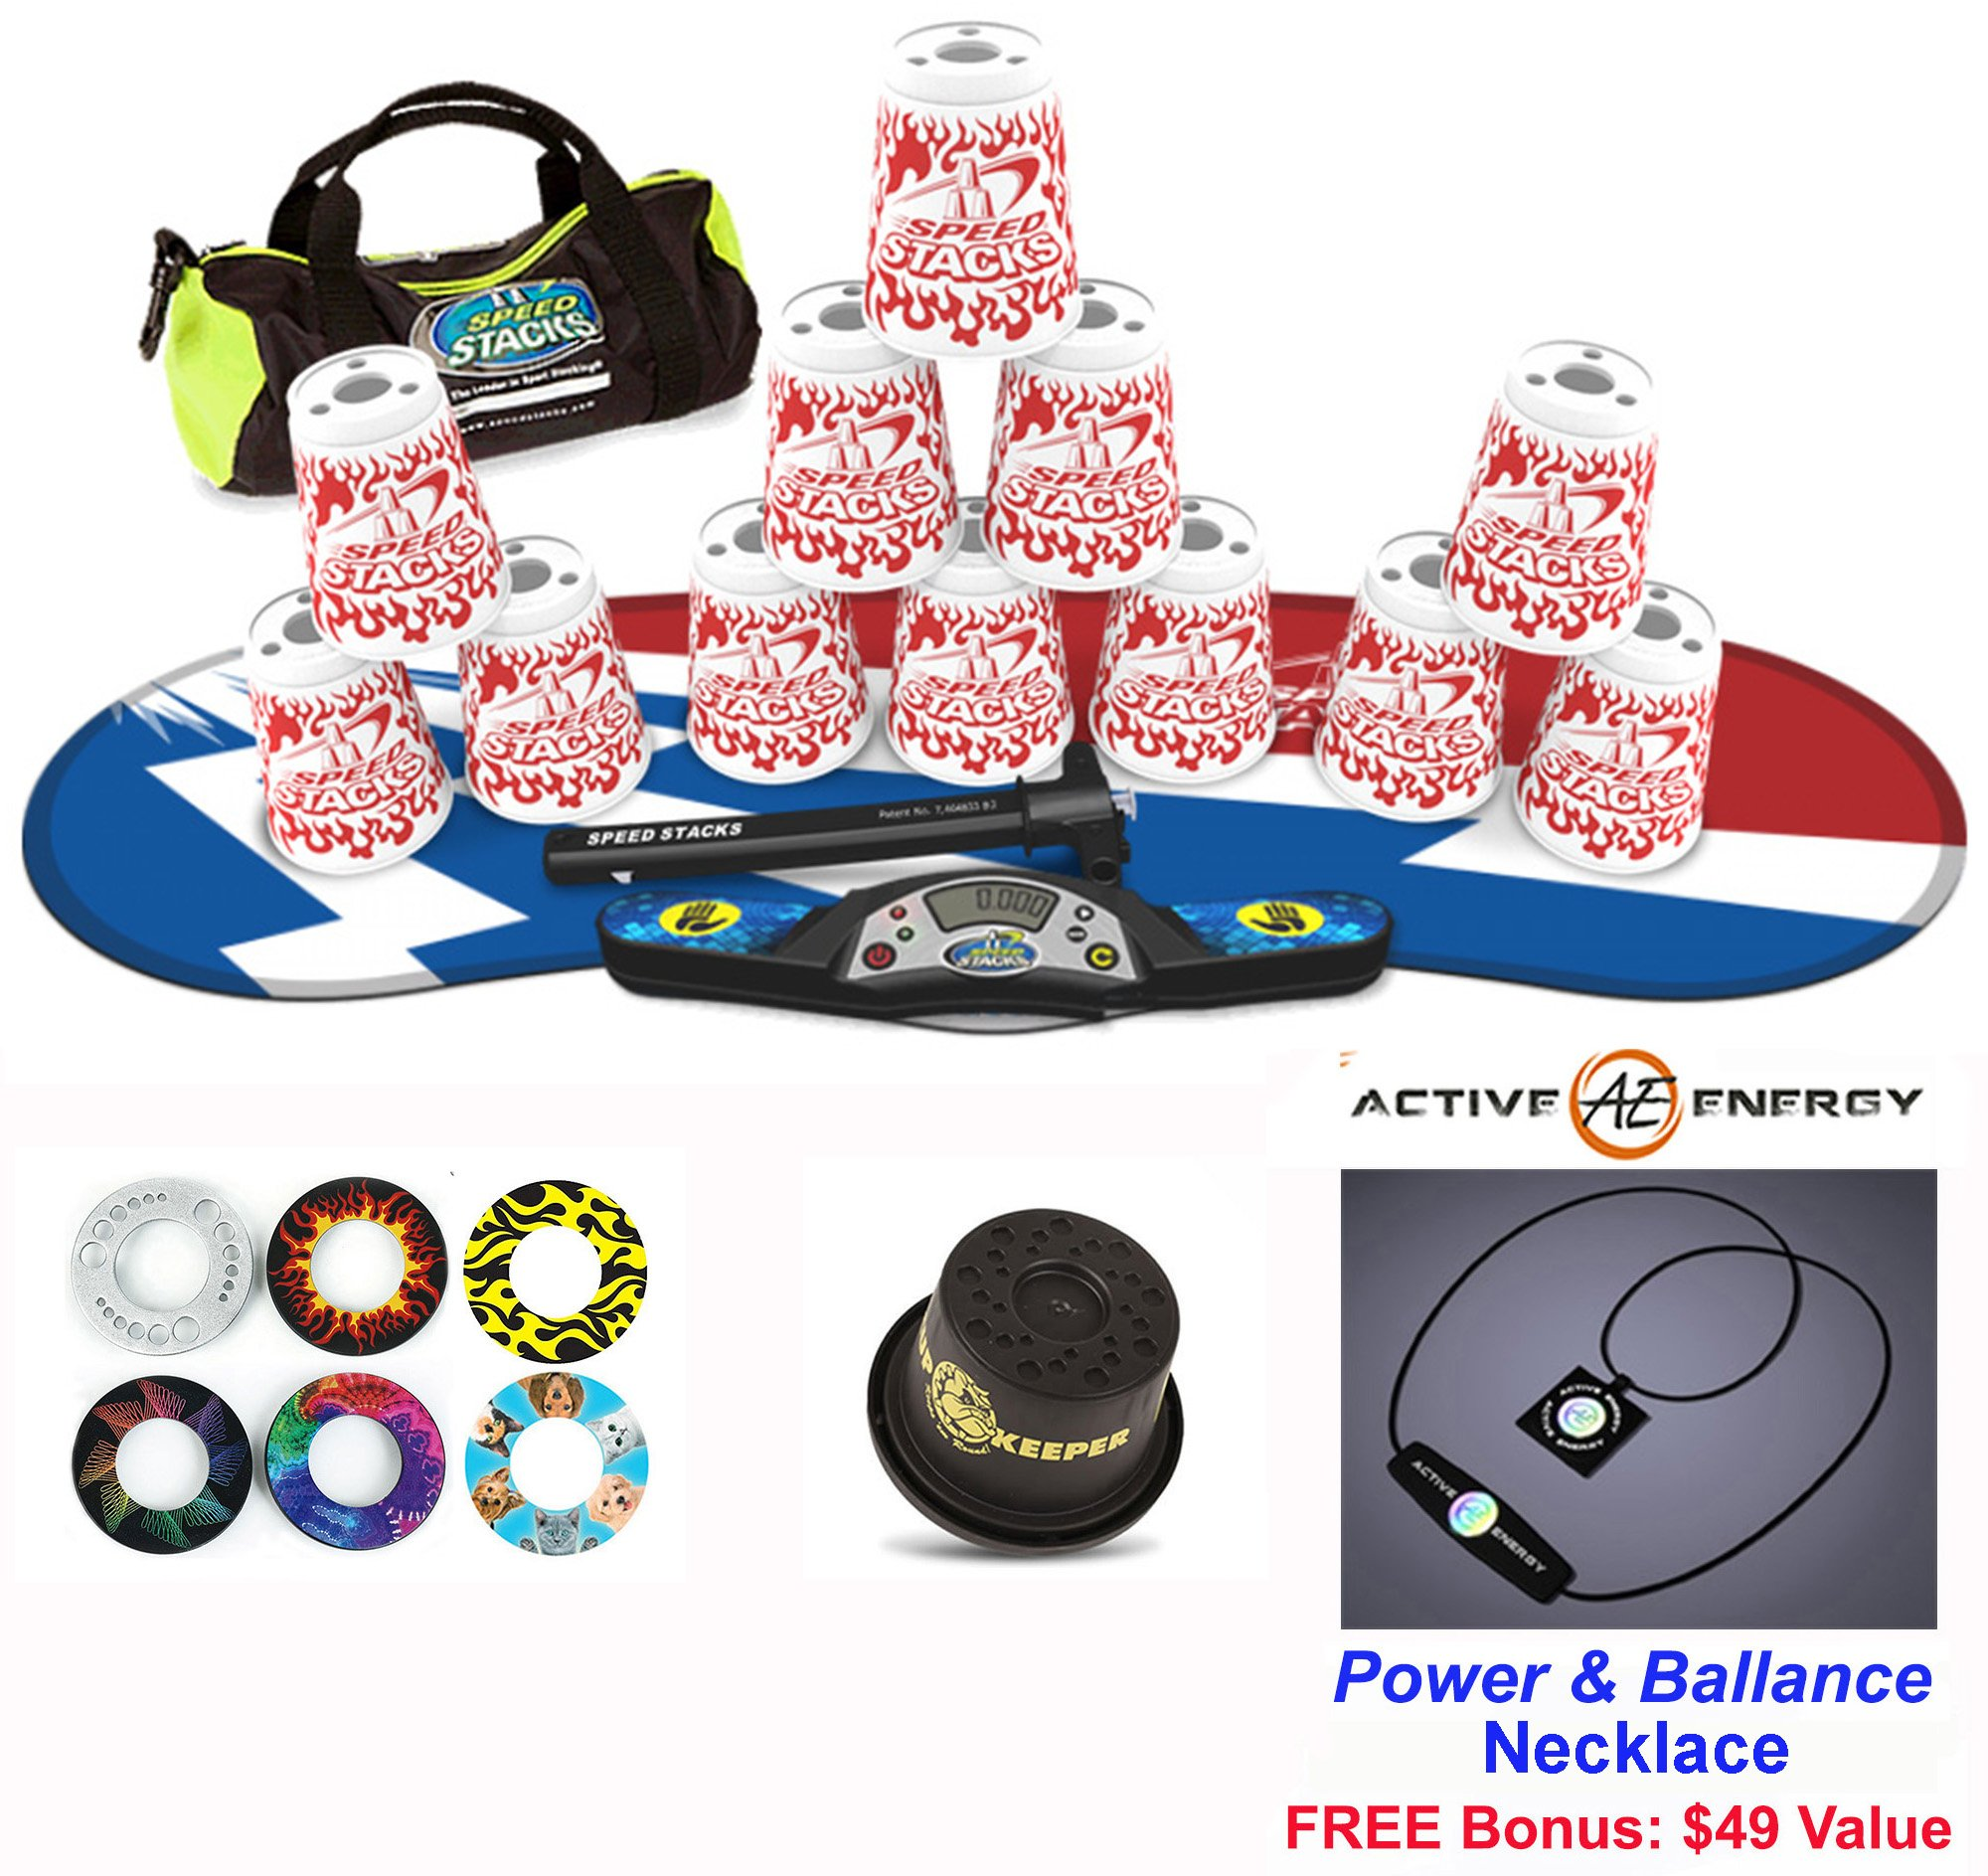 Speed Stacks Combo Set 'The Works'': 12 WHITE FLAME 4'' Cups, Atomic Punch Gen 3 Mat, G4 Pro Timer, Cup Keeper, Stem, Gear Bag + Active Energy Necklace by Speed Stacks